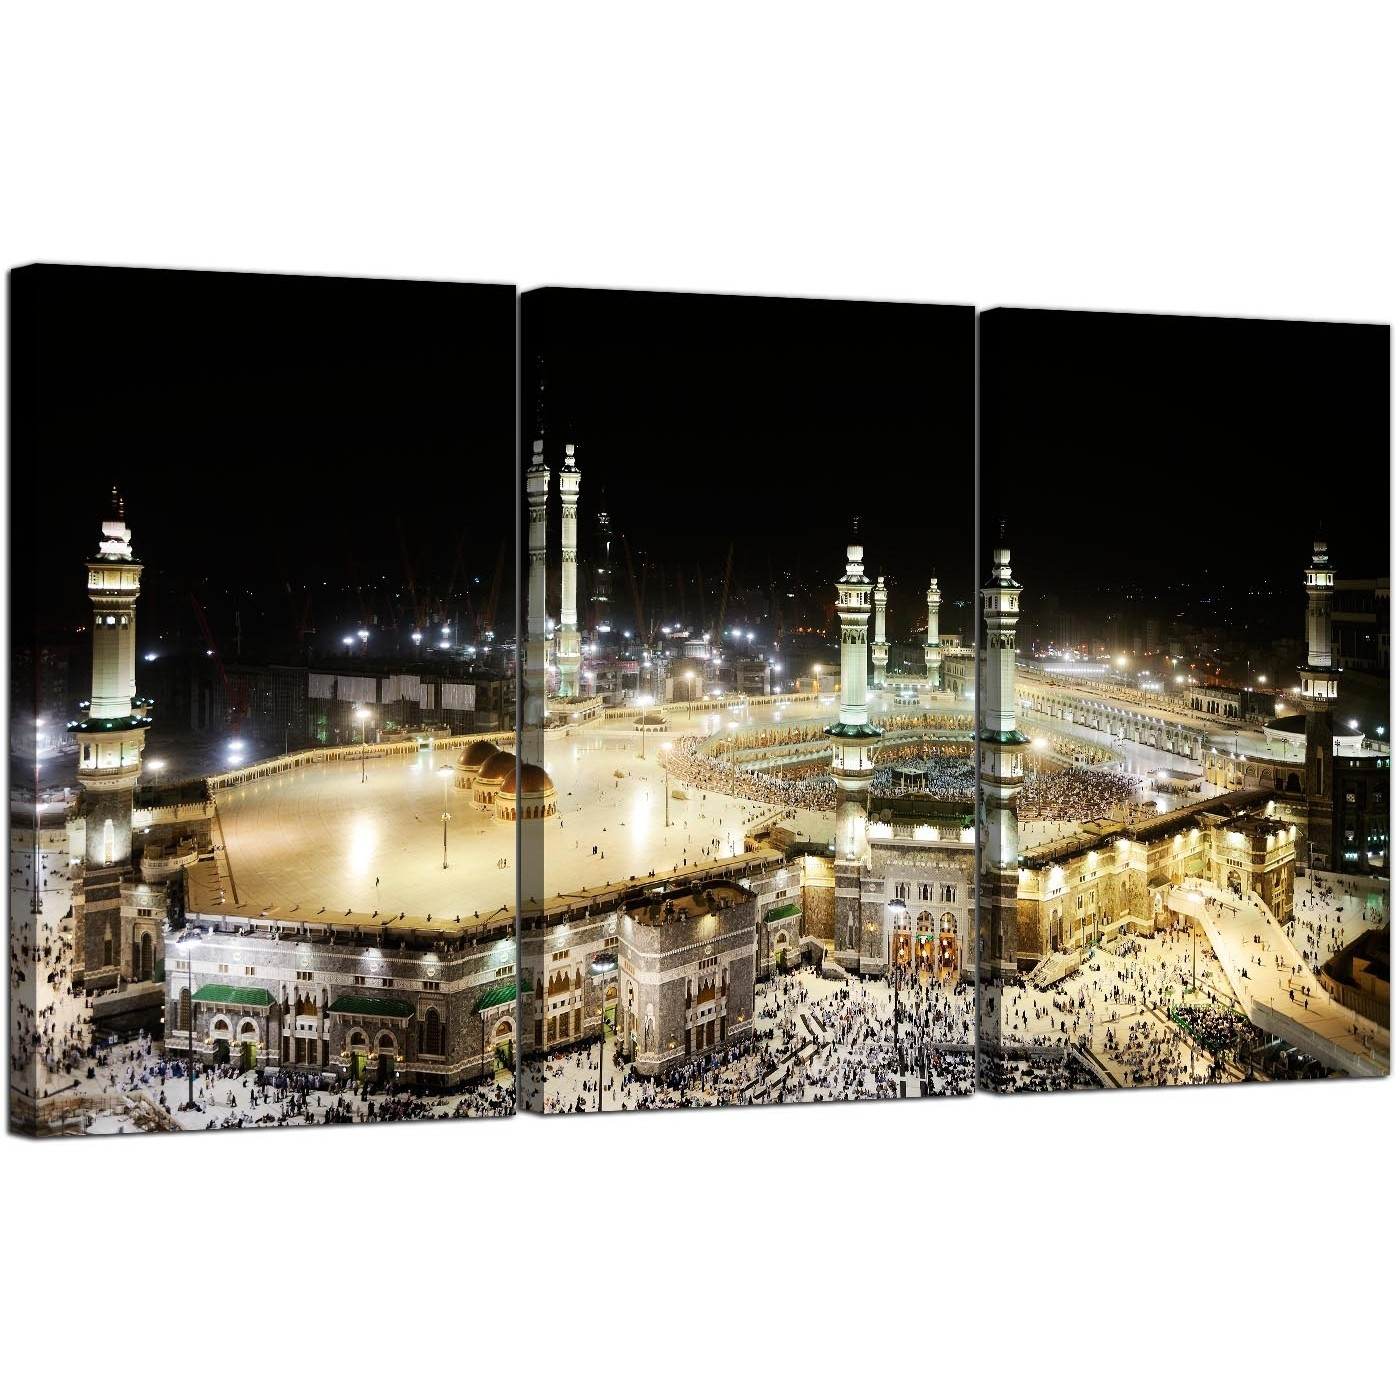 Large Islamic Mecca At Hajj Canvas Pictures Set Of 3 For A Living Room For Latest Islamic Canvas Wall Art (View 11 of 15)